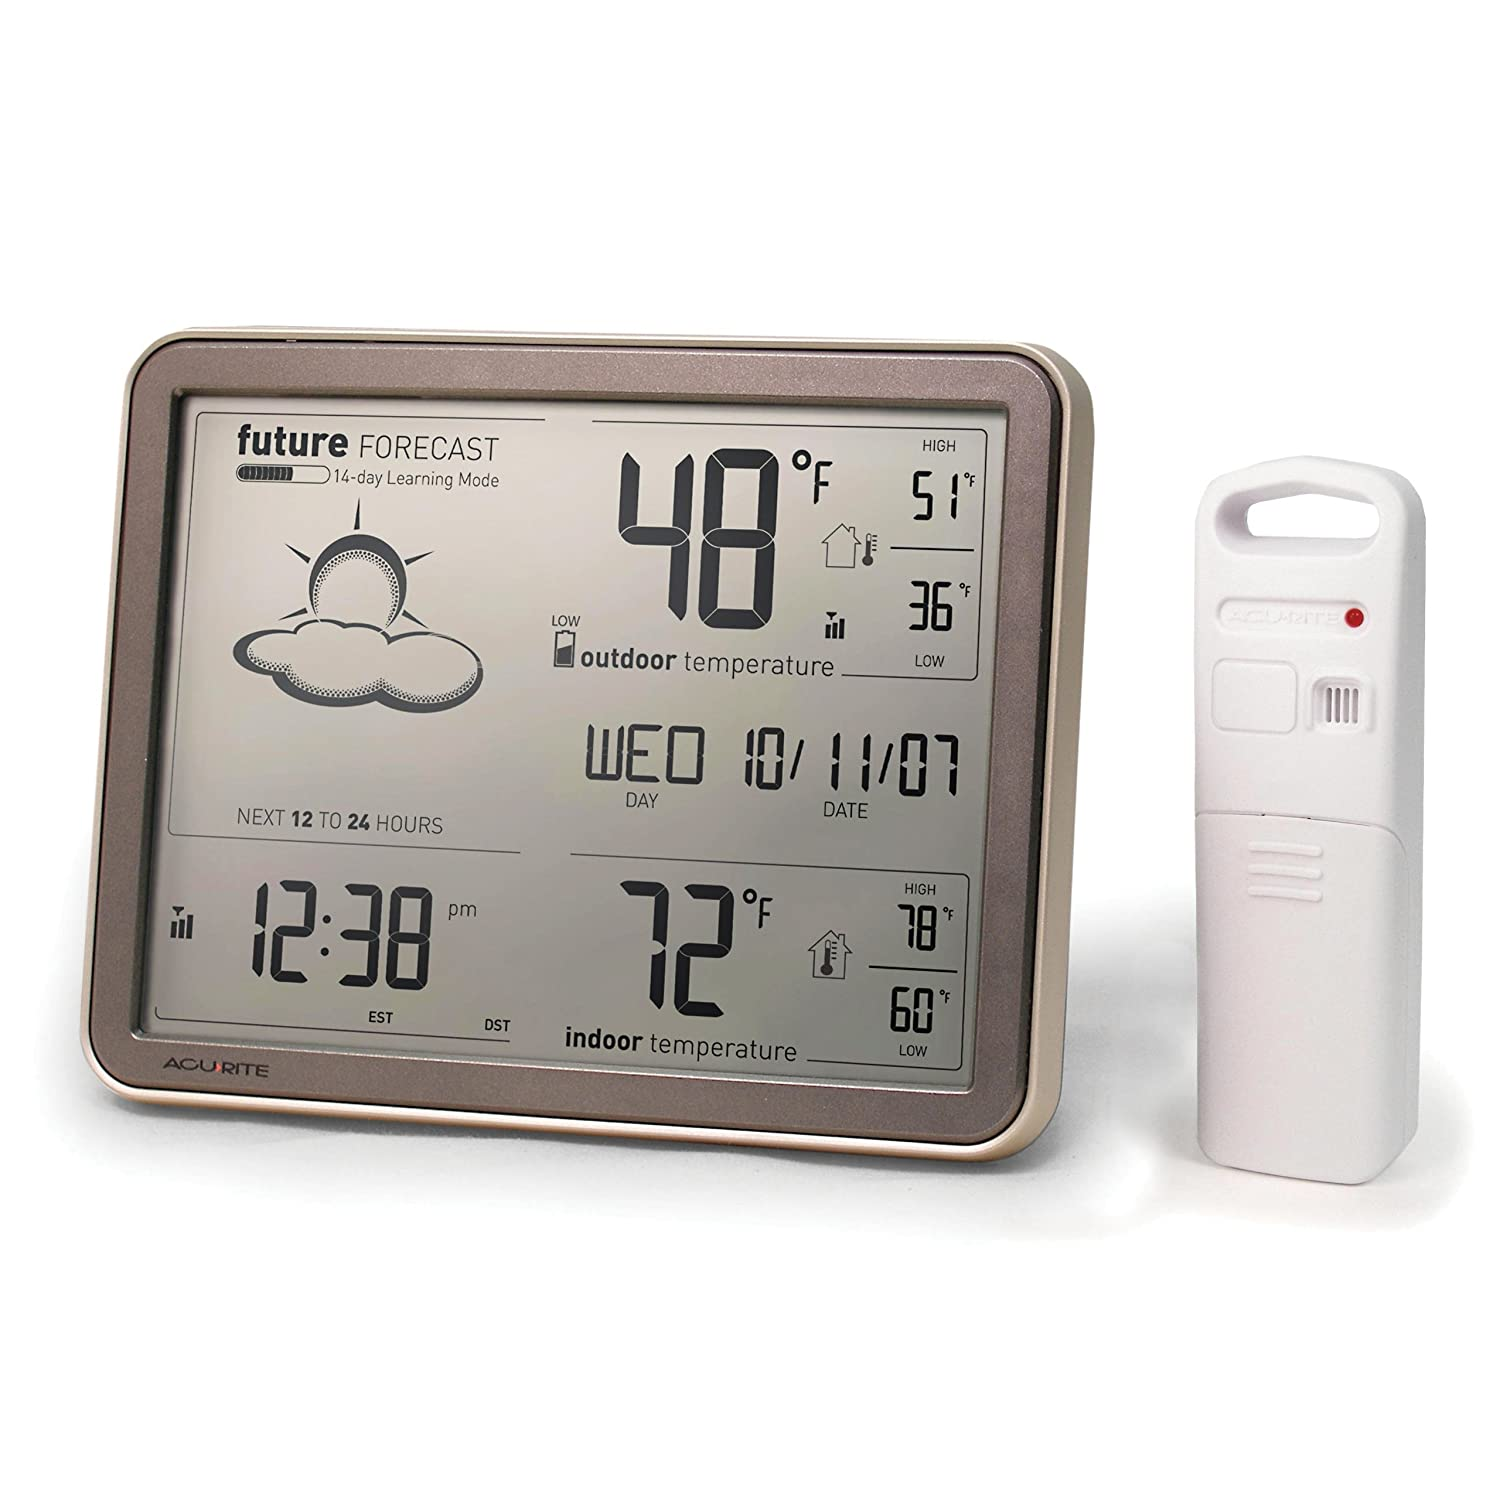 AcuRite 75077A3M Self-Learning Forecast Wireless Weather Station with Large Display and Atomic Clock